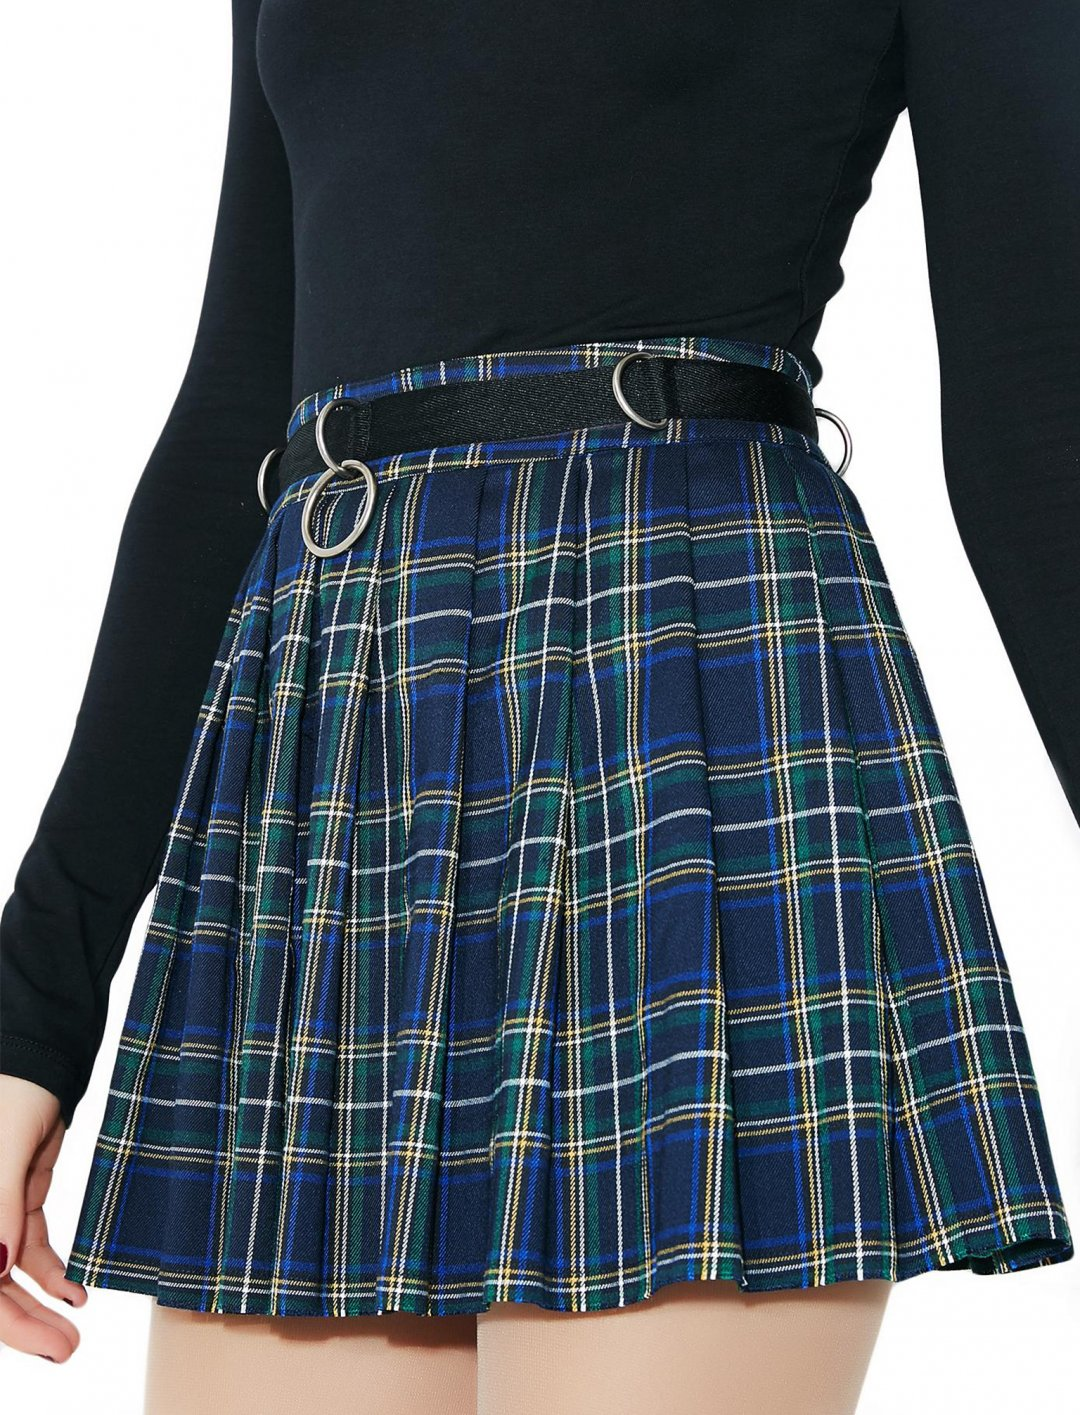 """Dress Code Plaid Skirt {""""id"""":5,""""product_section_id"""":1,""""name"""":""""Clothing"""",""""order"""":5} Dollskill"""